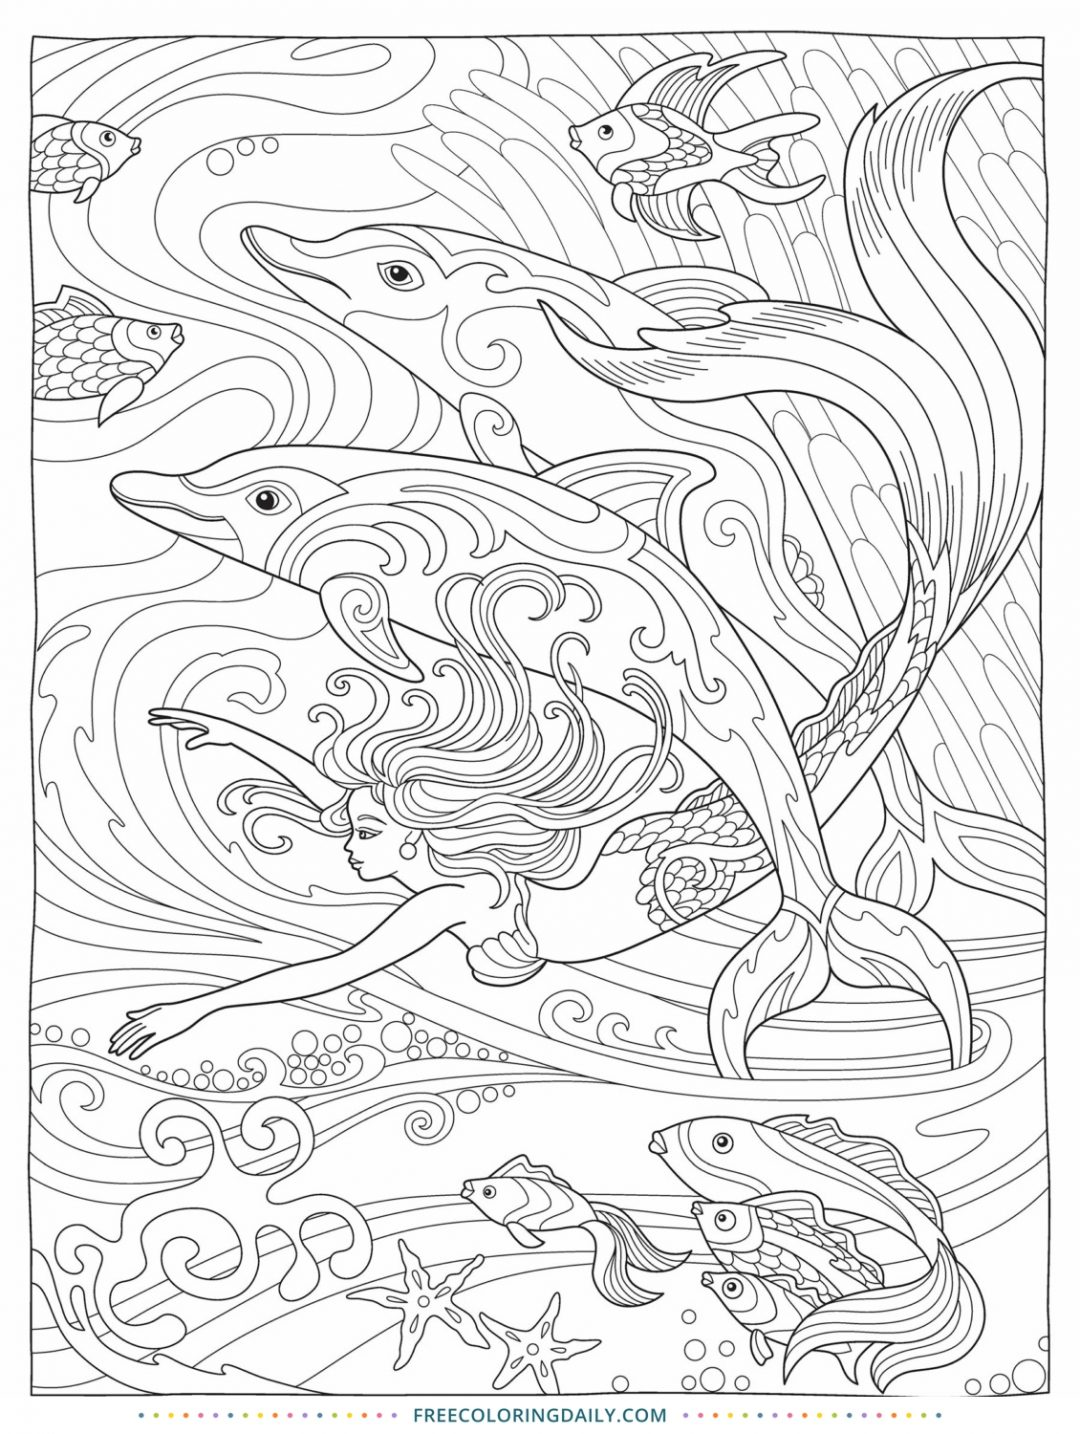 Free Dolphin & Mermaid Coloring